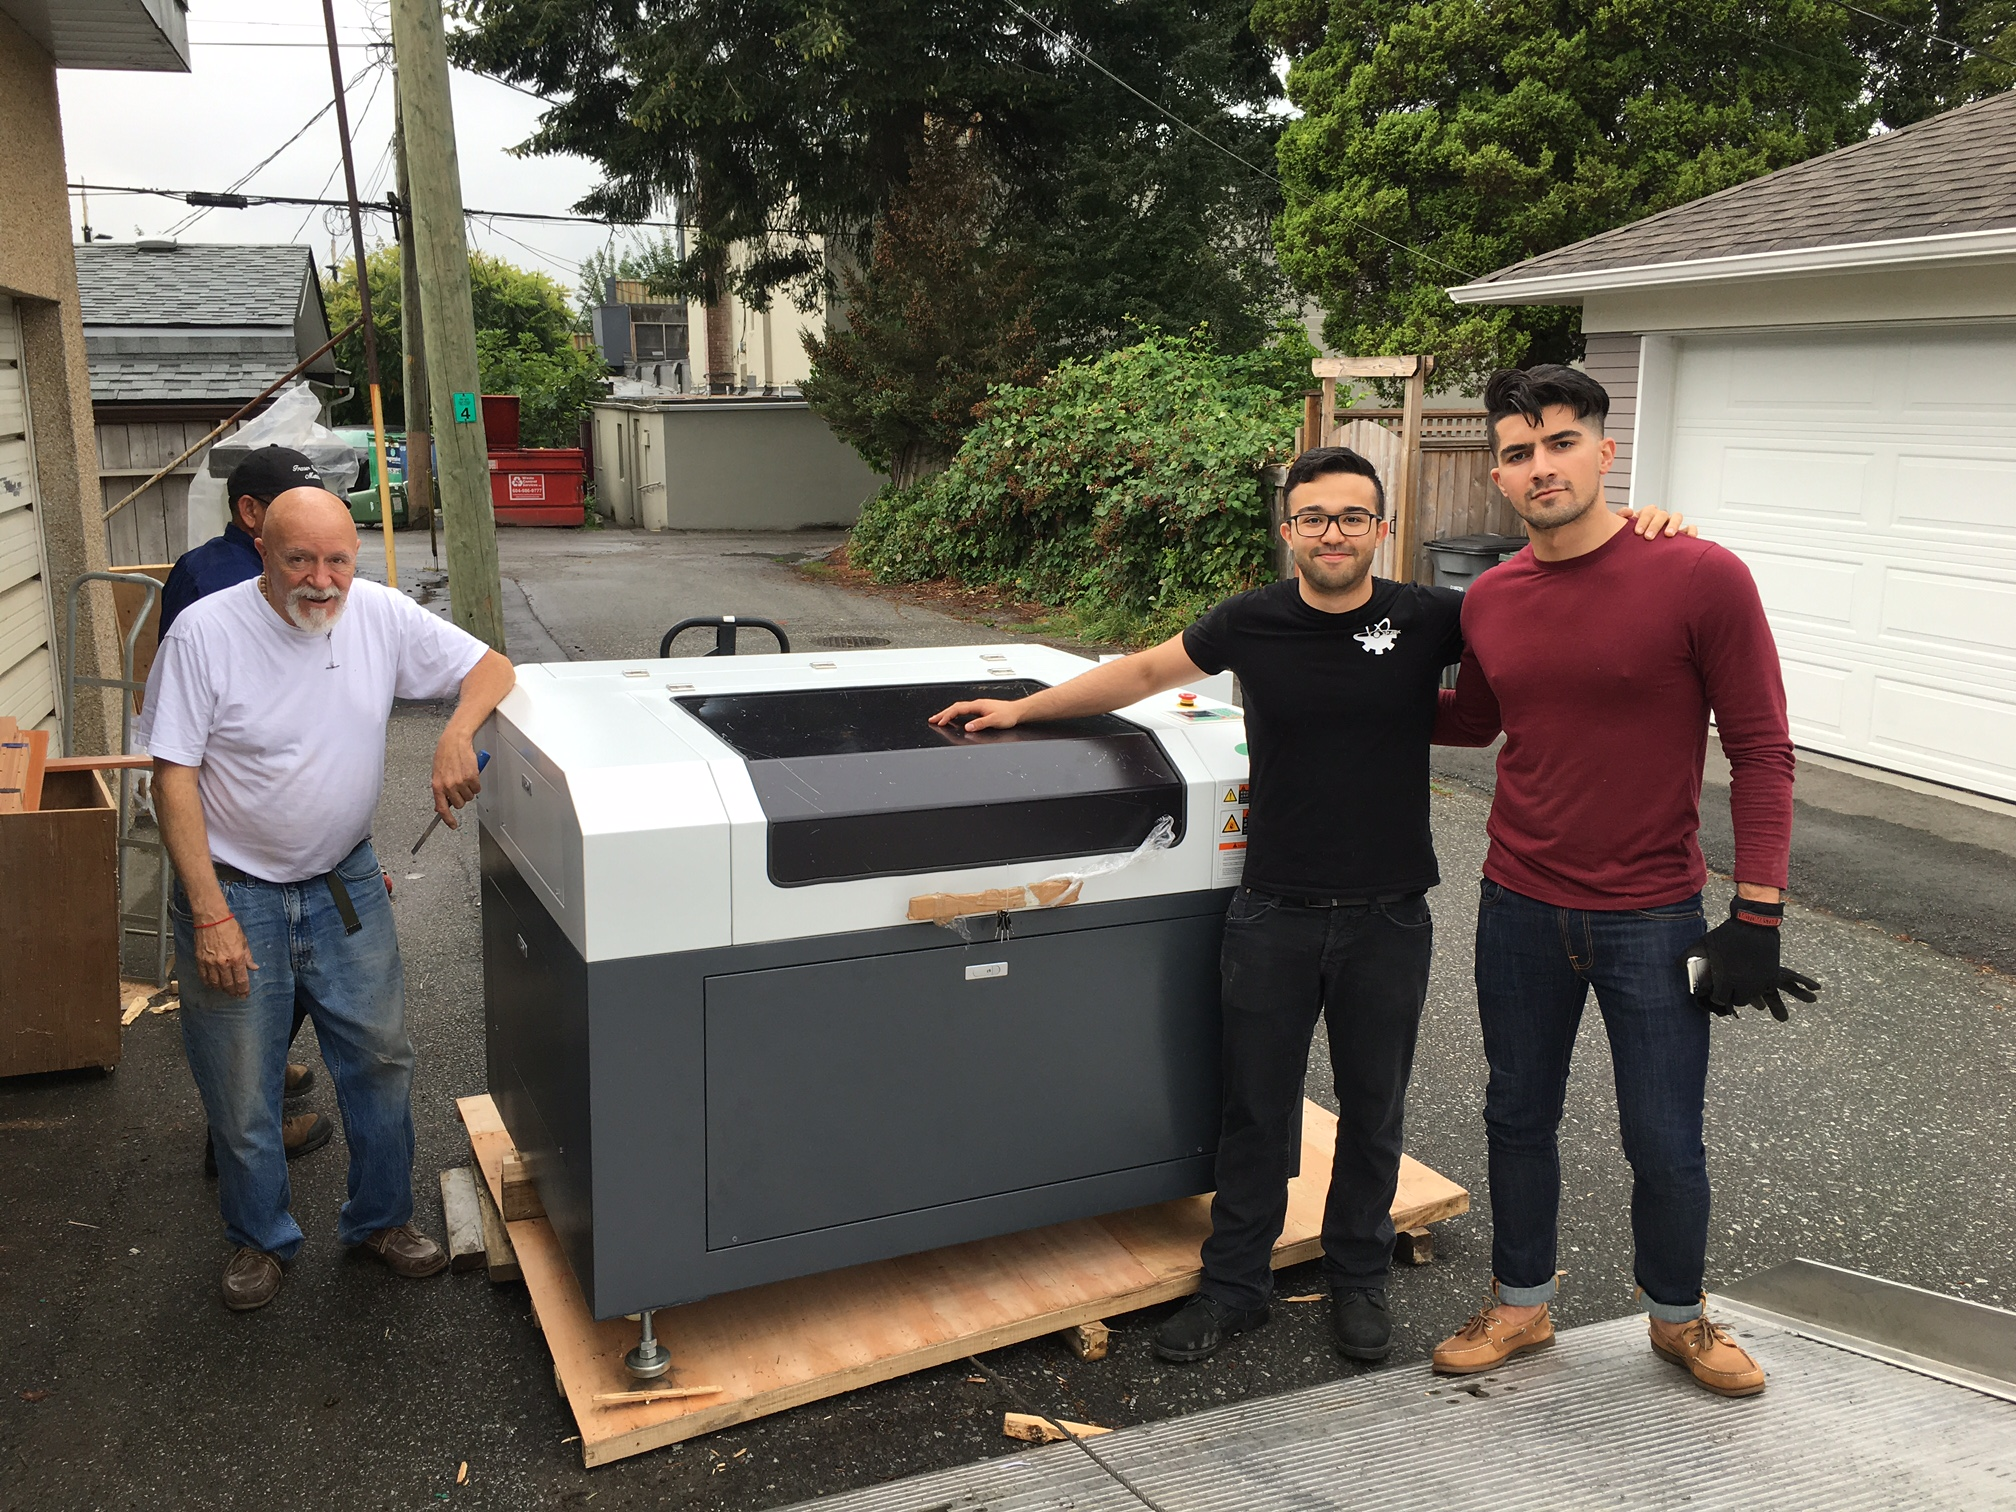 Wayne & Francisco  - Machine: SP-9006SYear: 2016Business/Use: Charity work & prototyping